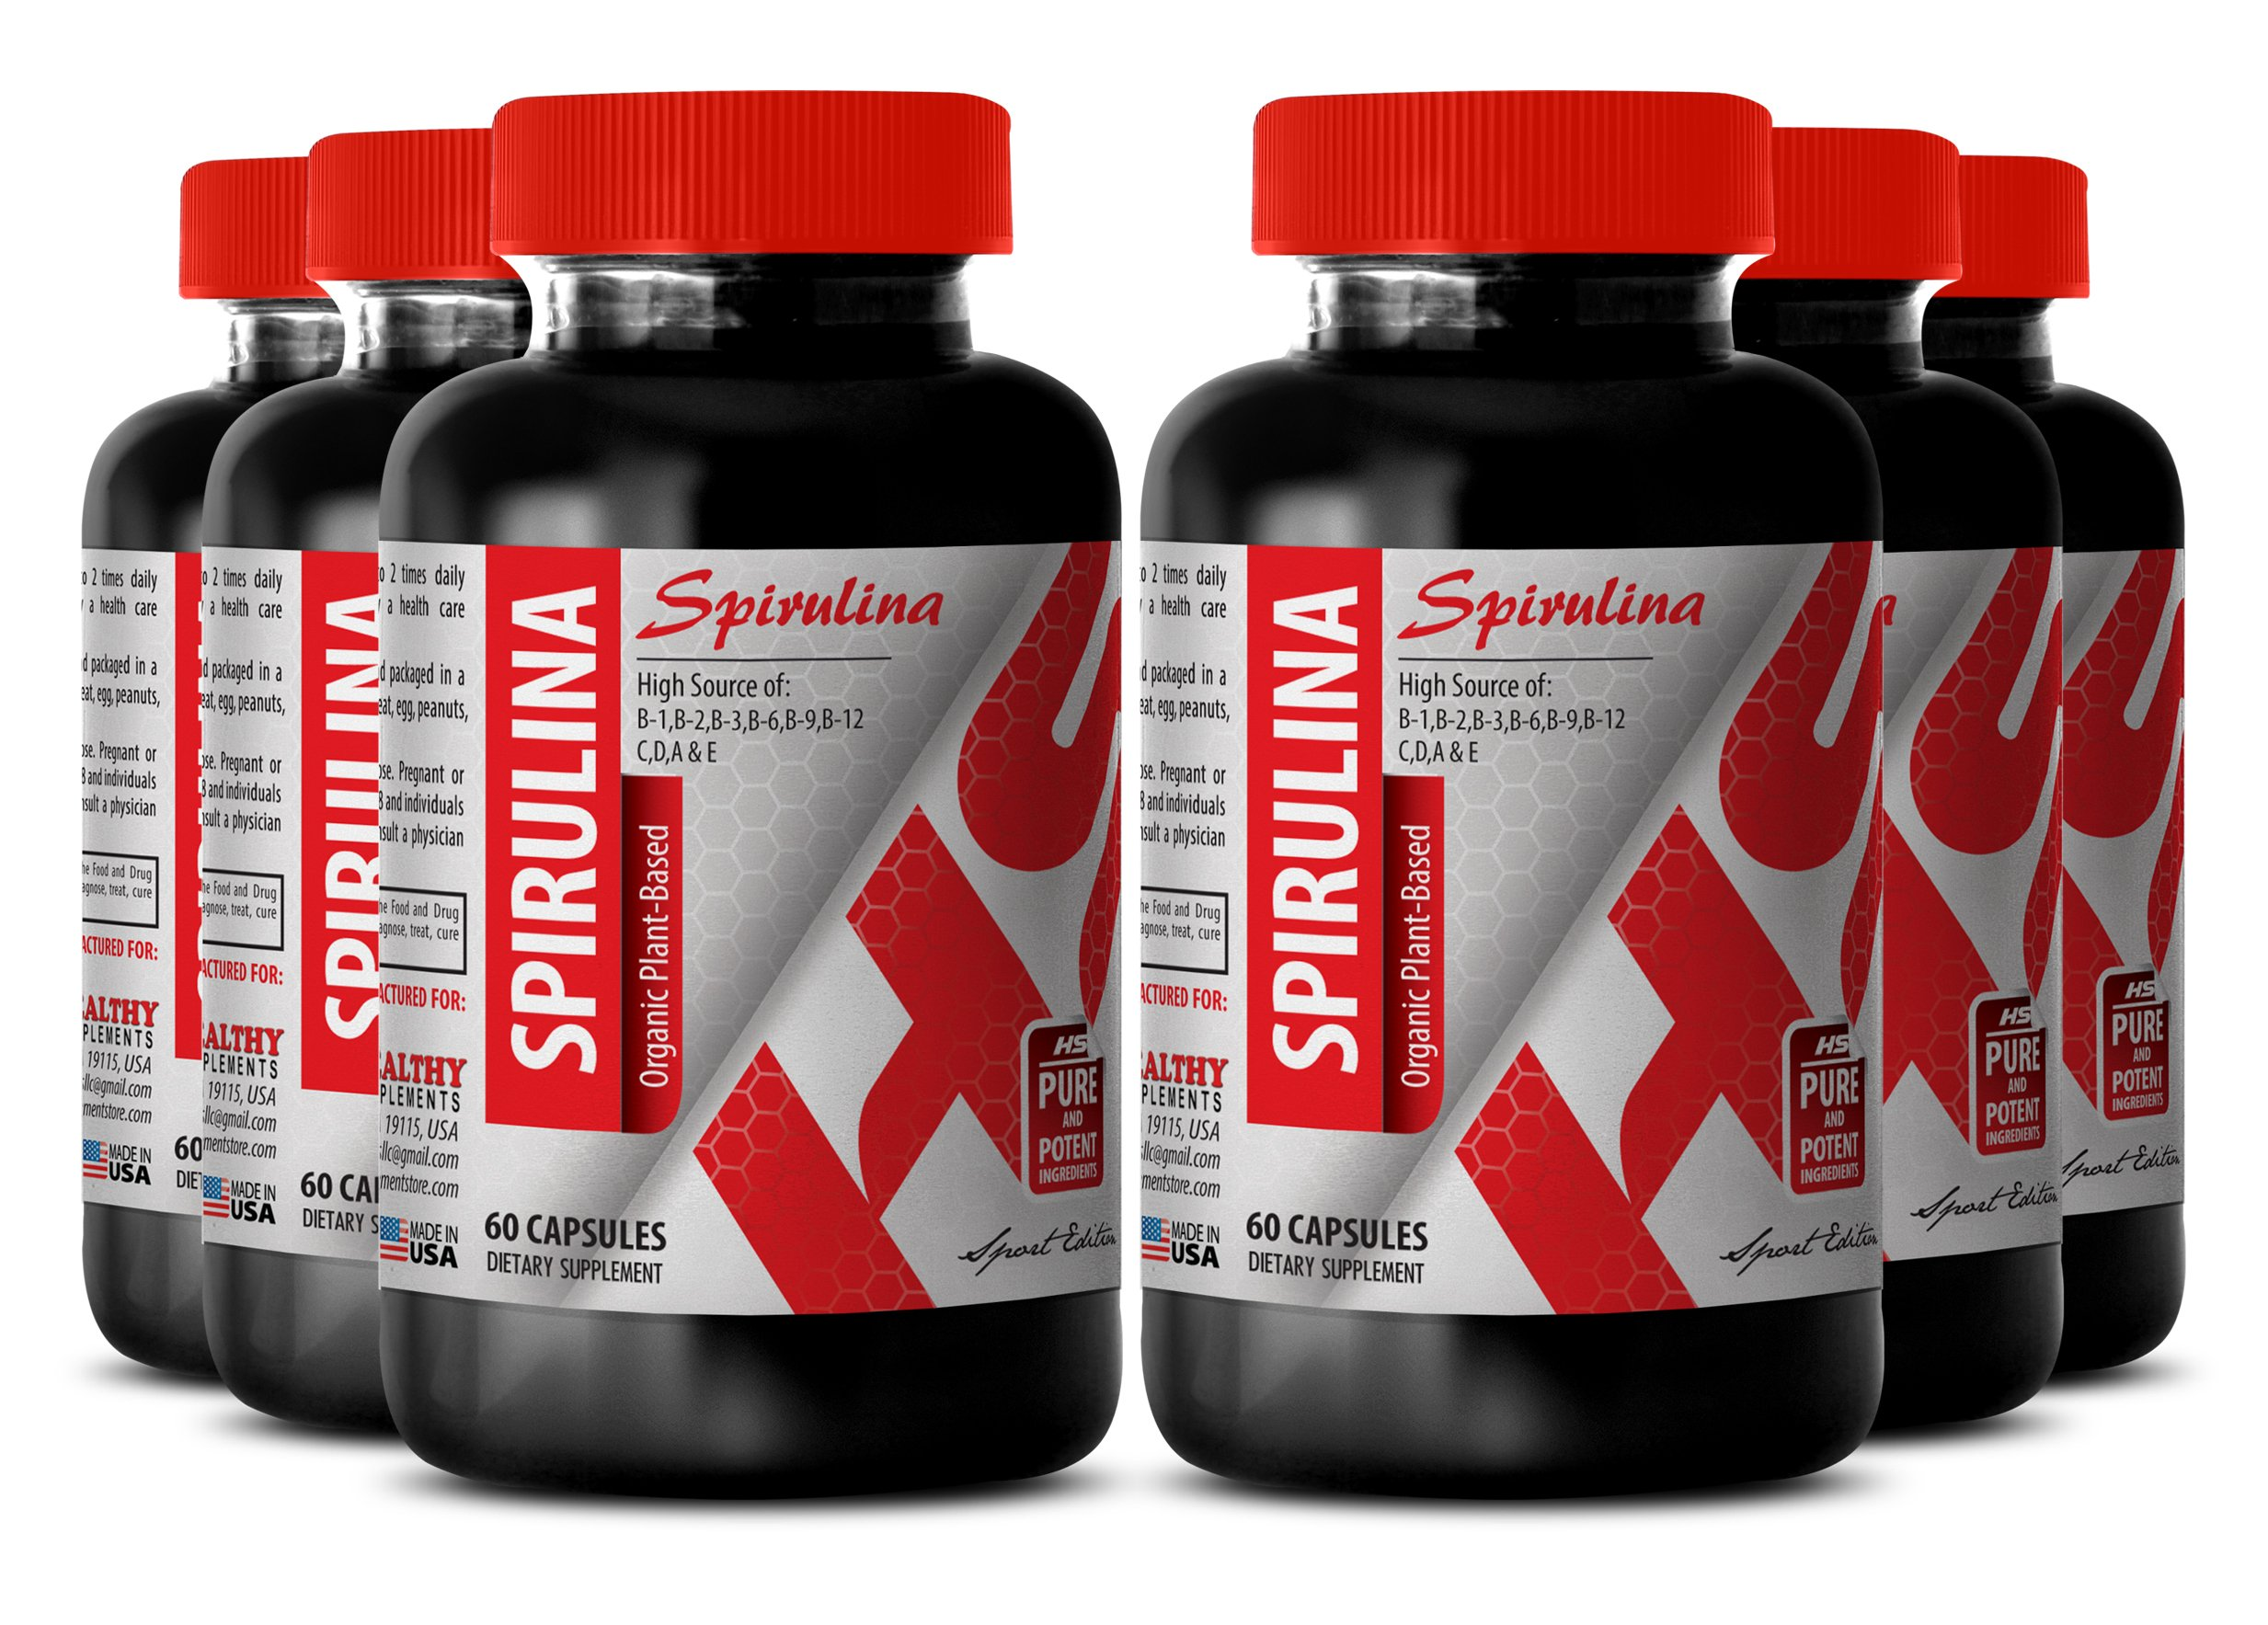 Pure spirulina - SPIRULINA ORGANIC PLANT-BASED 500 MG - for candida (6 Bottles)